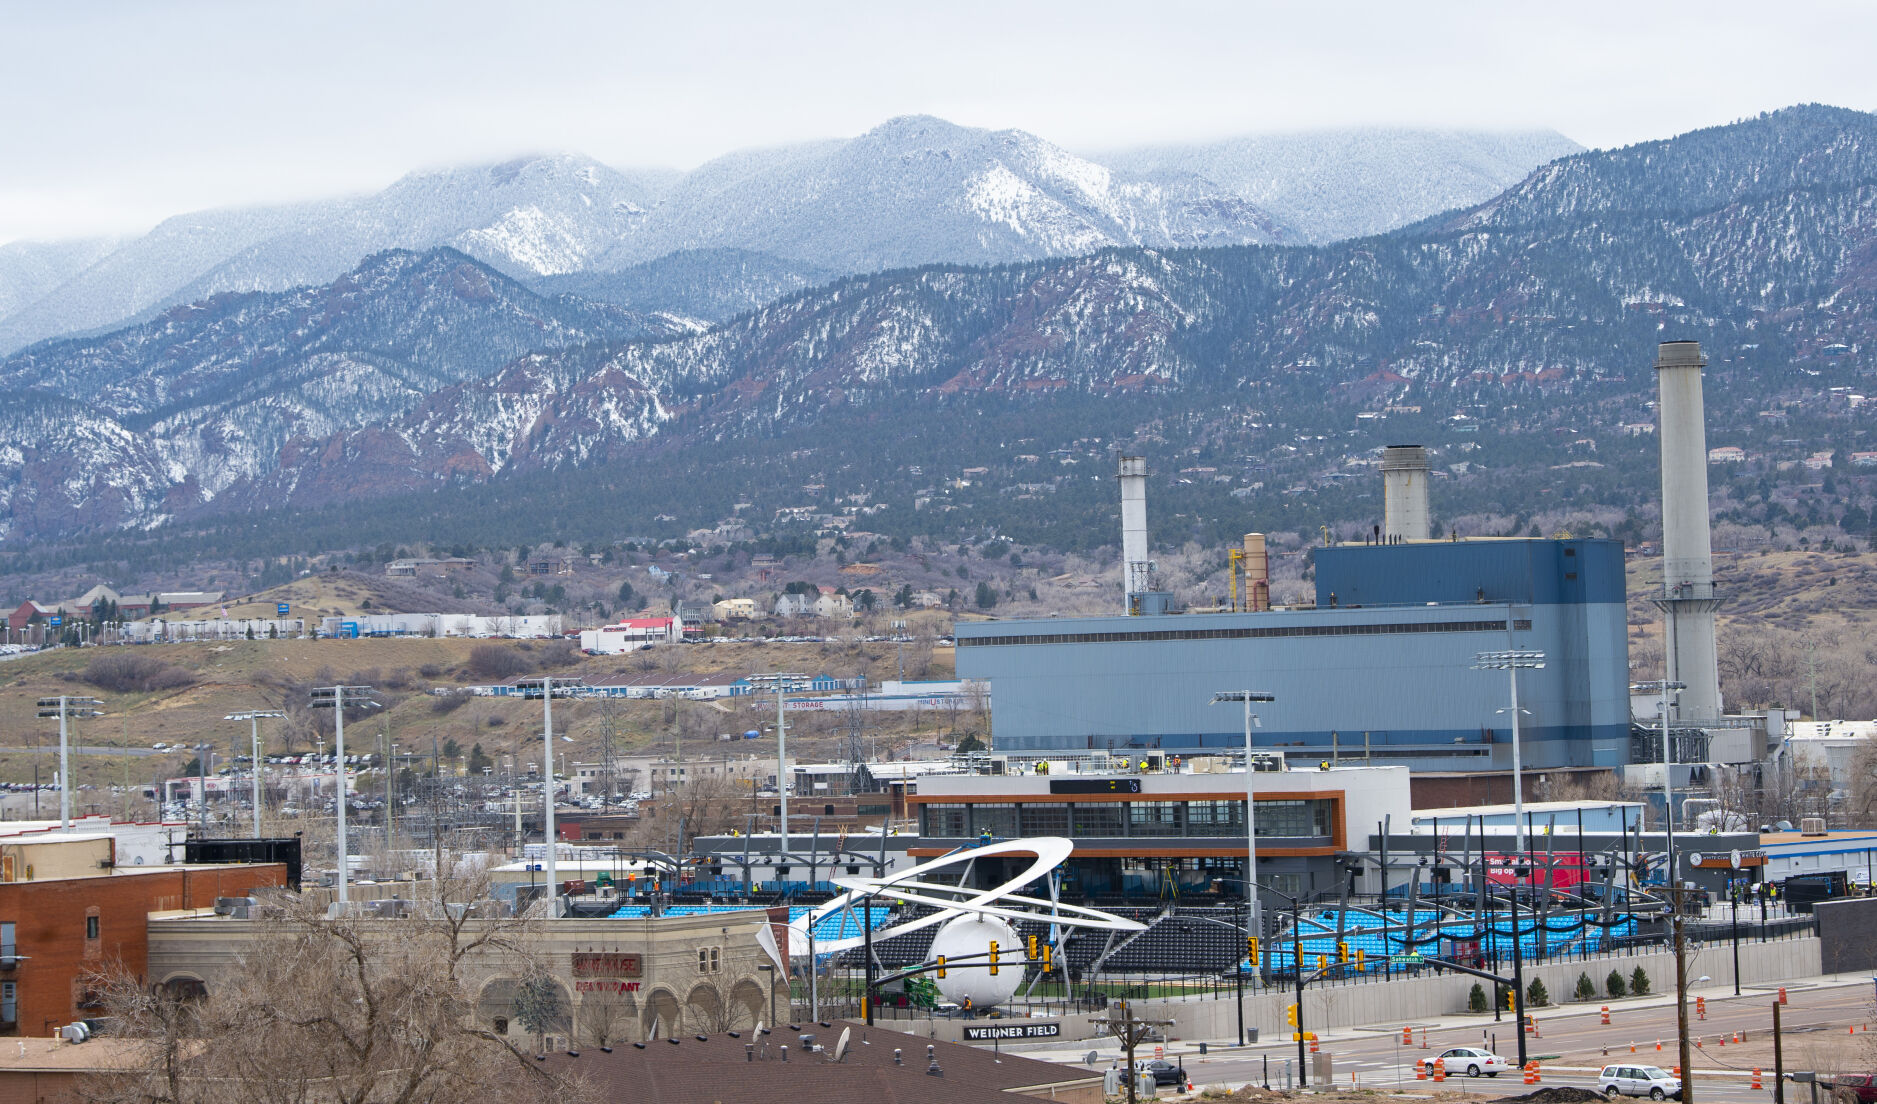 gazette.com - Wayne Heilman - Downtown Colorado Springs stadium site has lengthy history of industrial uses